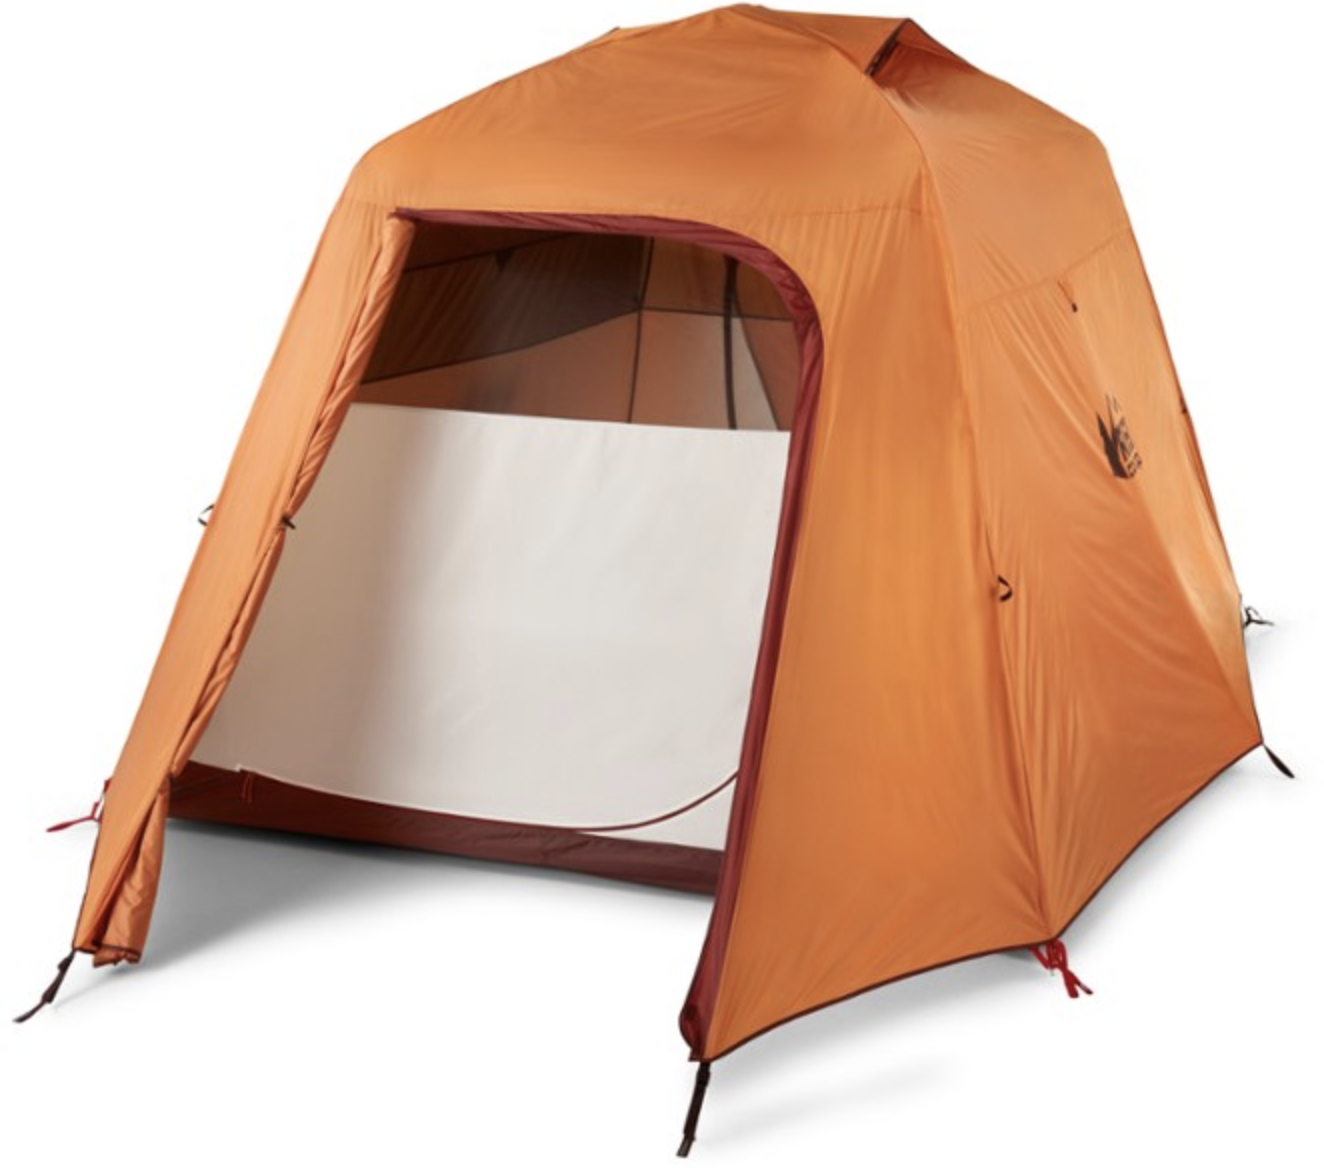 tall orange tent with rain fly